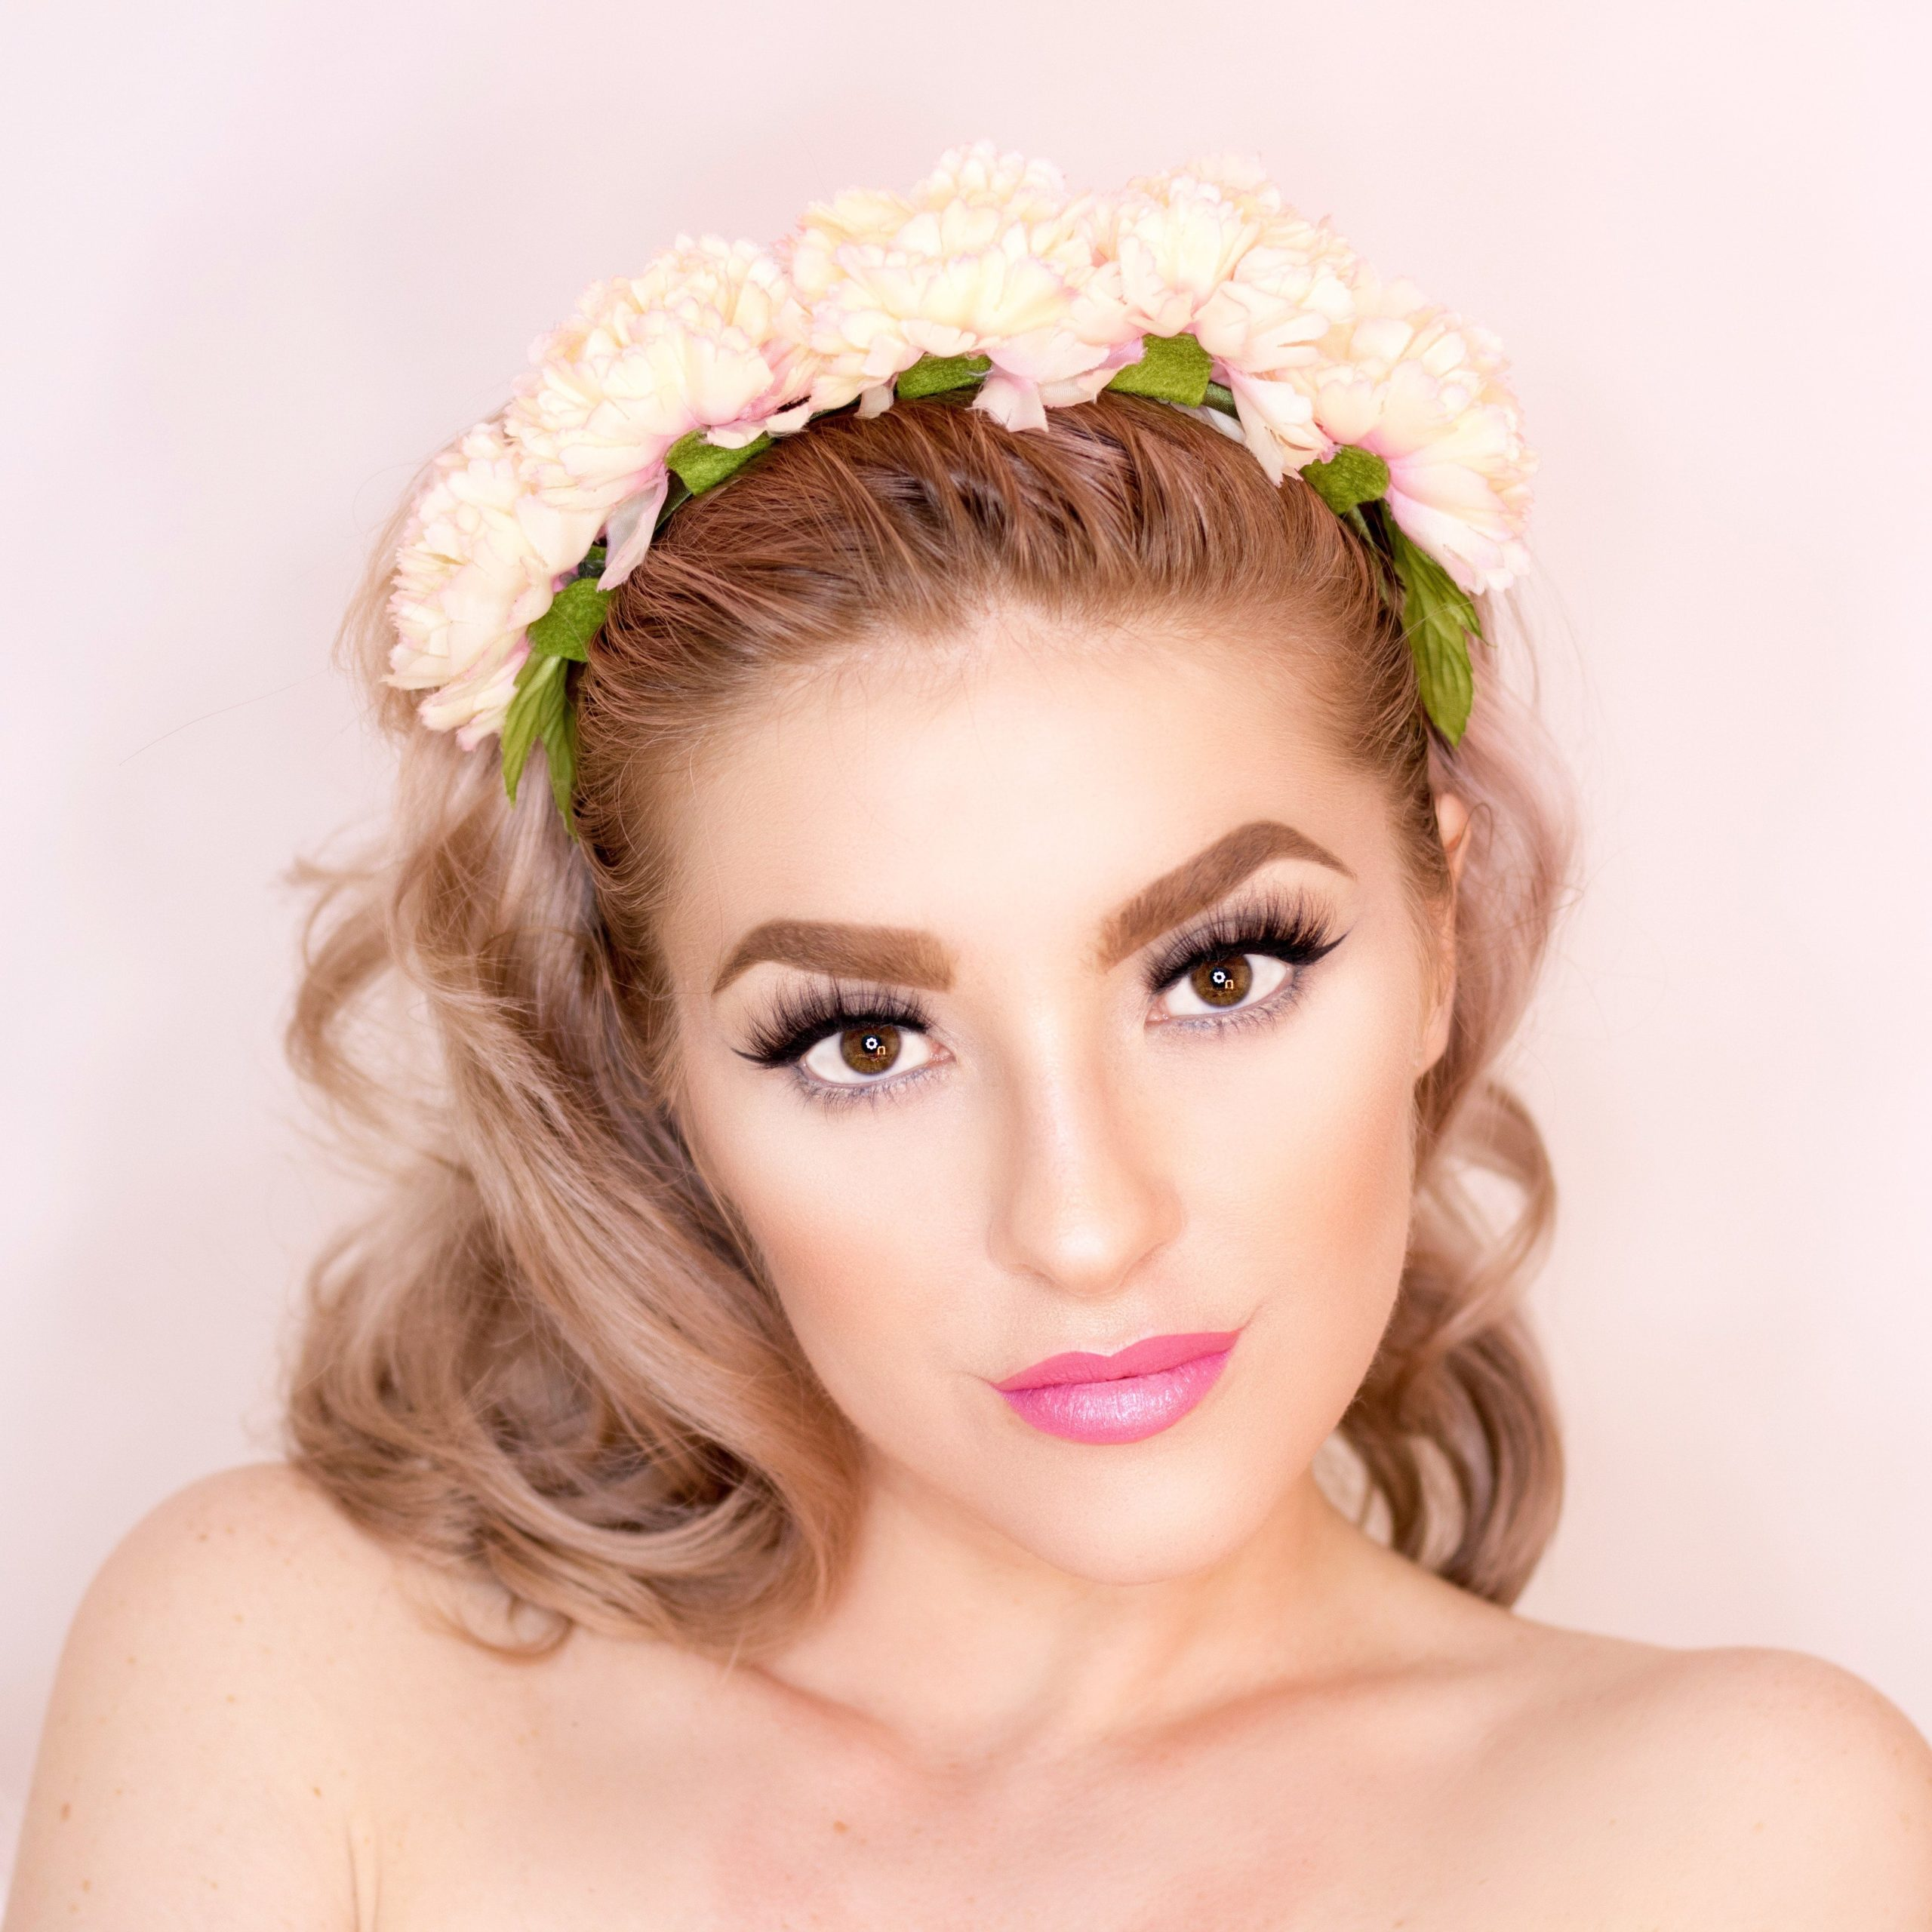 woman wearing pink lipstick with flowers around her hair, like crown.